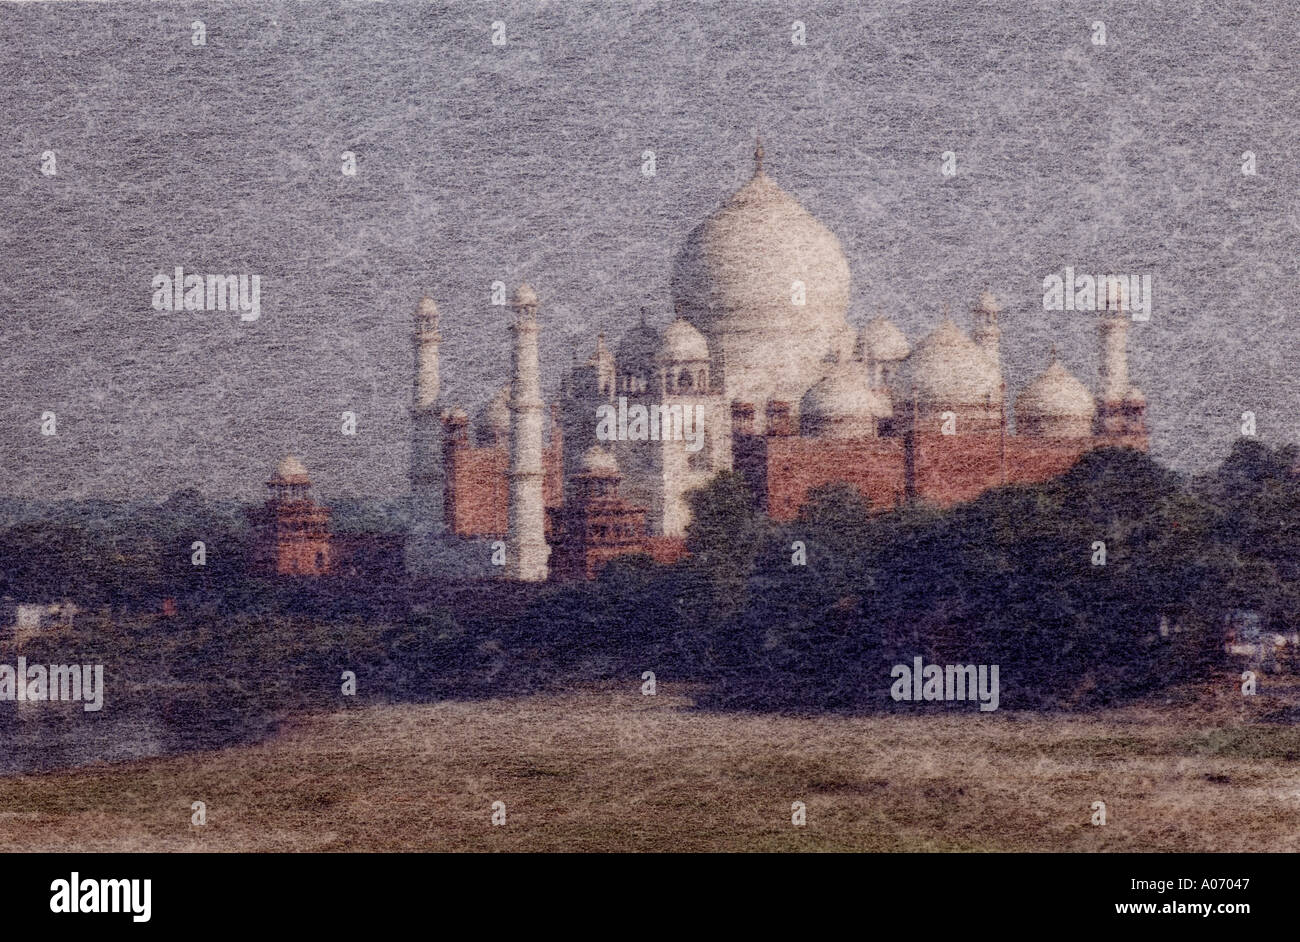 Taj Mahal from the Red Fort Artistic Impression, Rajasthan, India Stock Photo